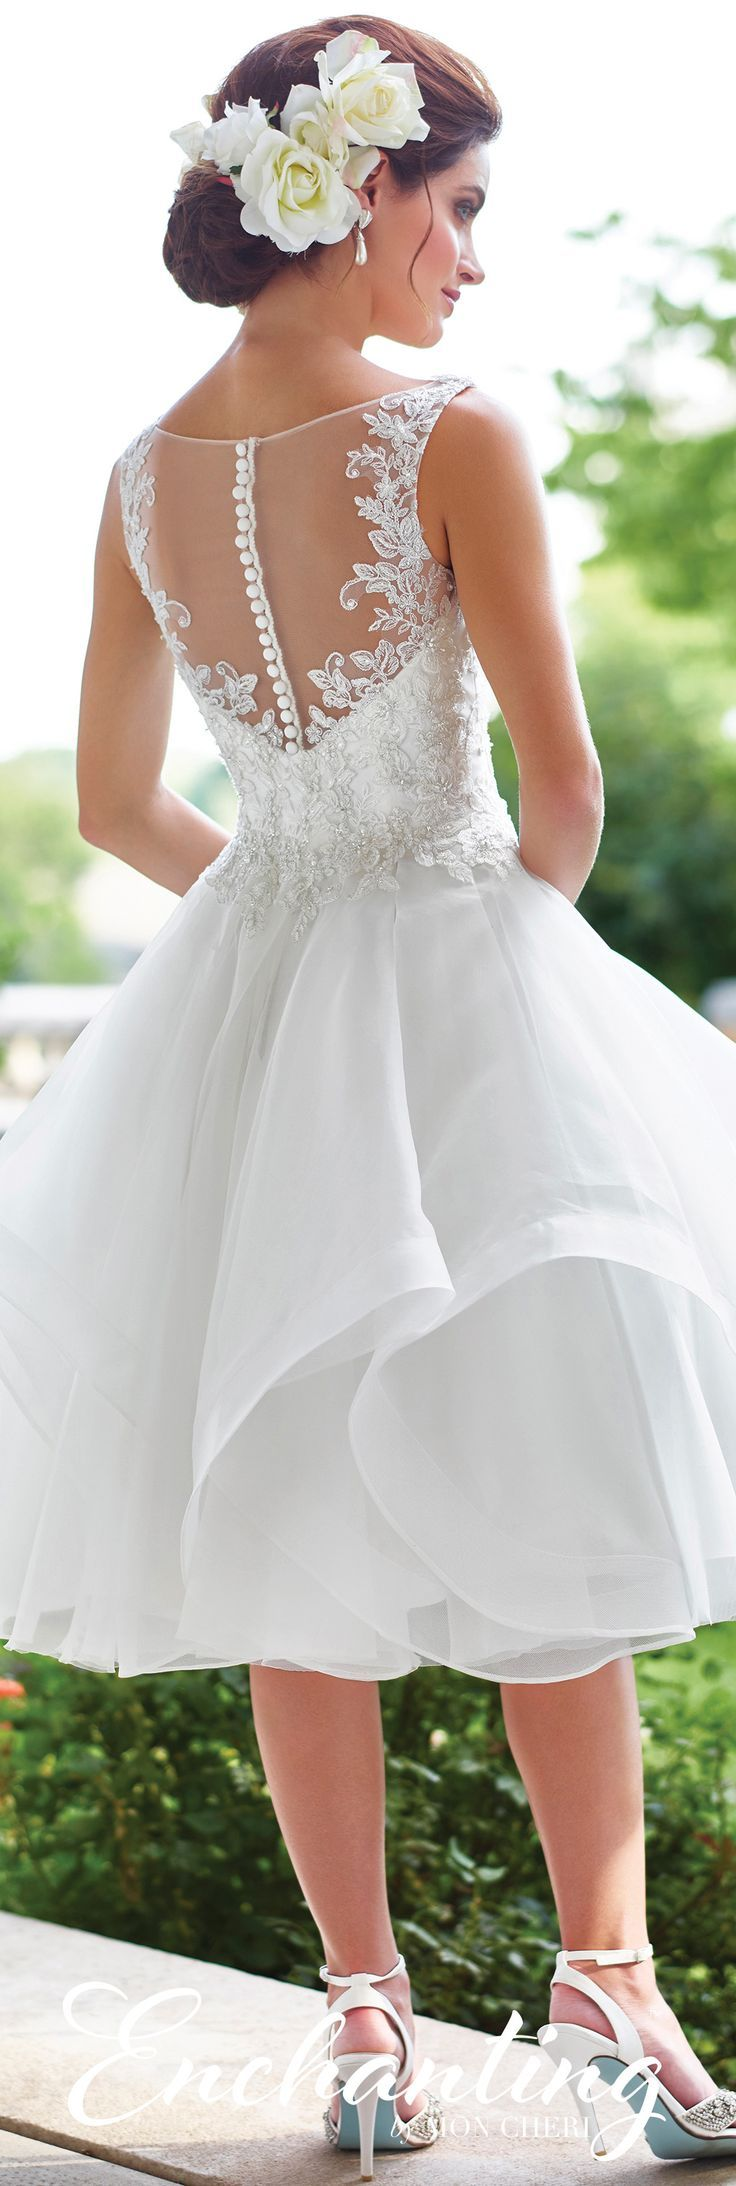 Enchanting By Mon Cheri Spring 2017 Wedding Gown Collection Style No 117181 Sleeveless